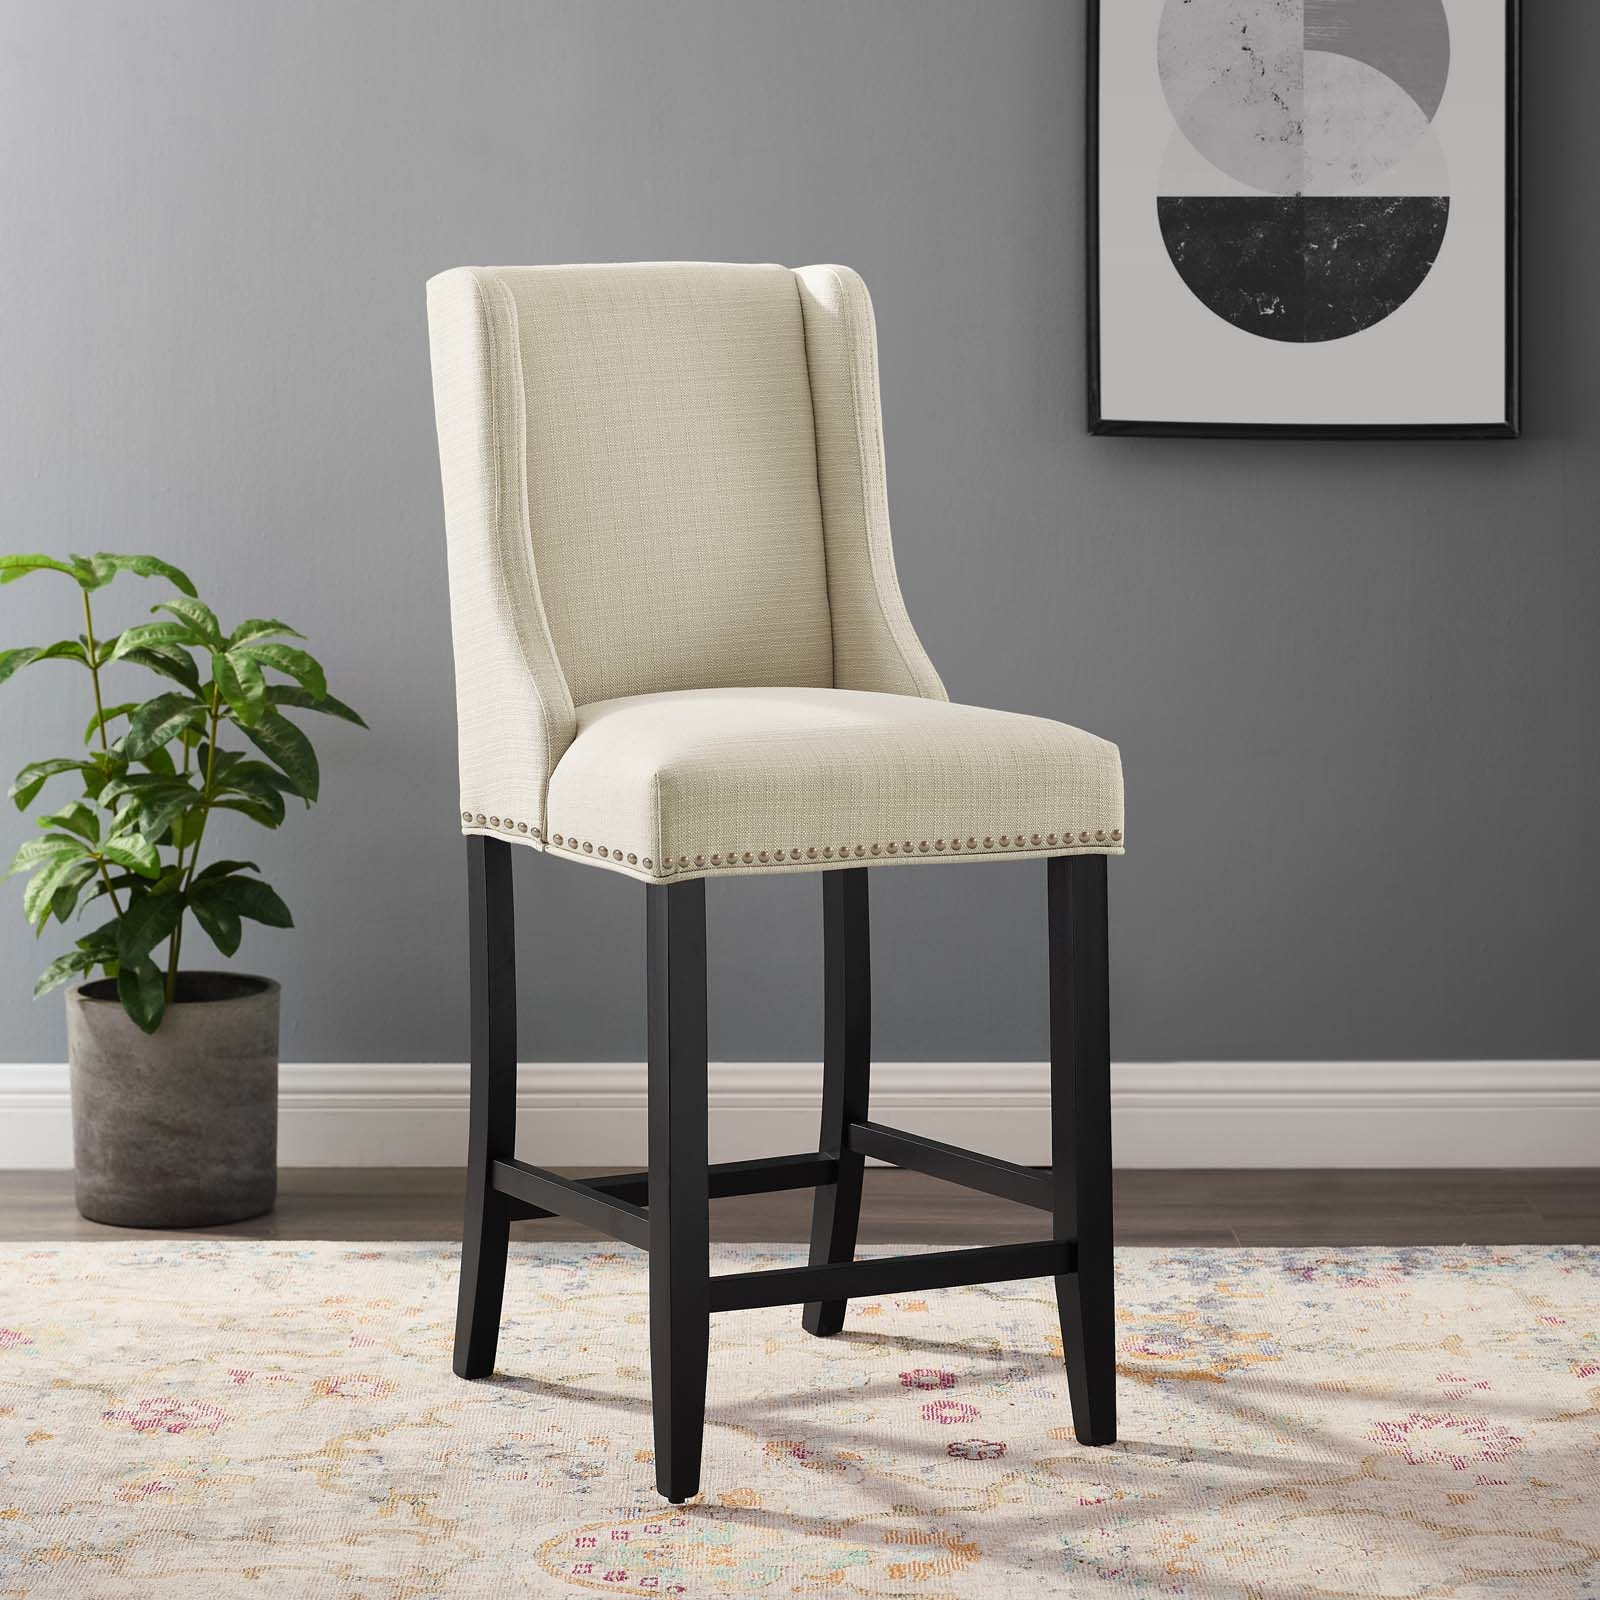 Baron Upholstered Fabric Counter Stool in Beige